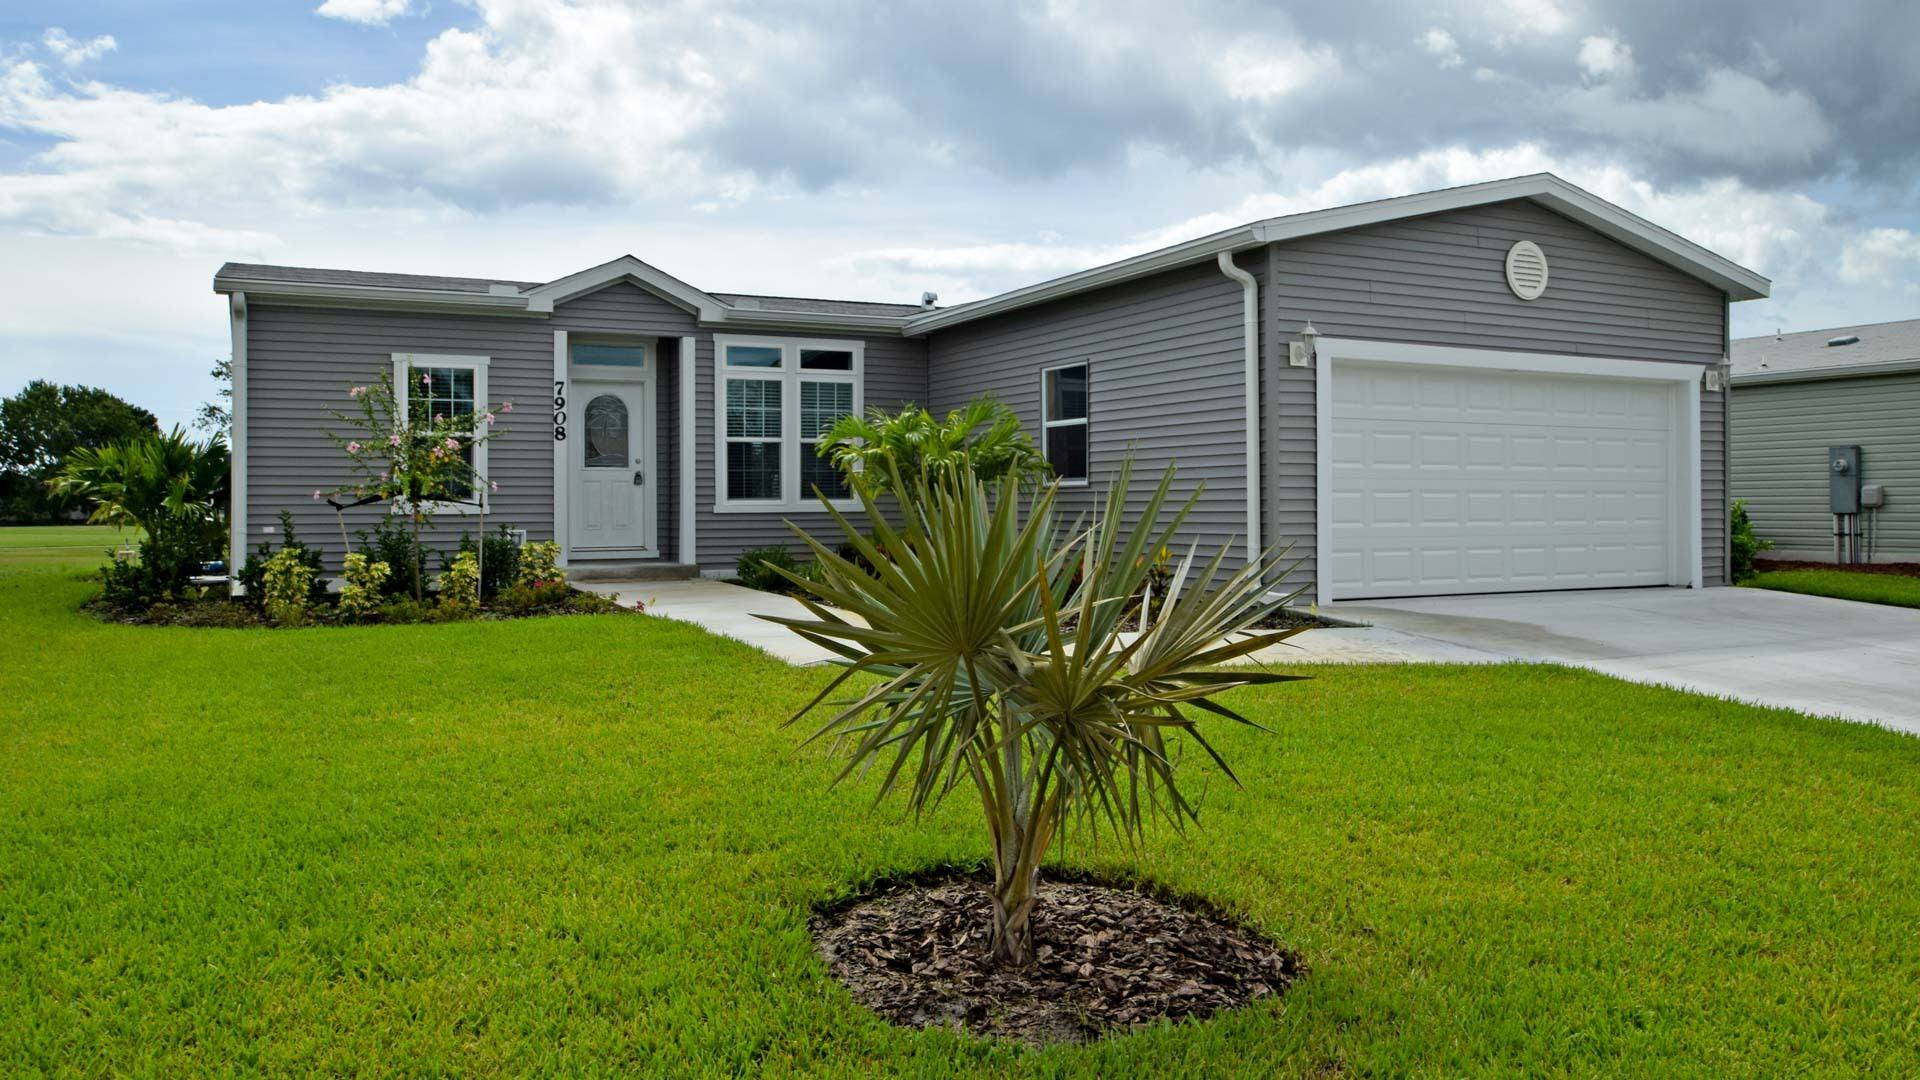 Savanna Club 55+ Manufactured Homes Community 7908 Horned Lark Circle in St. Lucie, FL